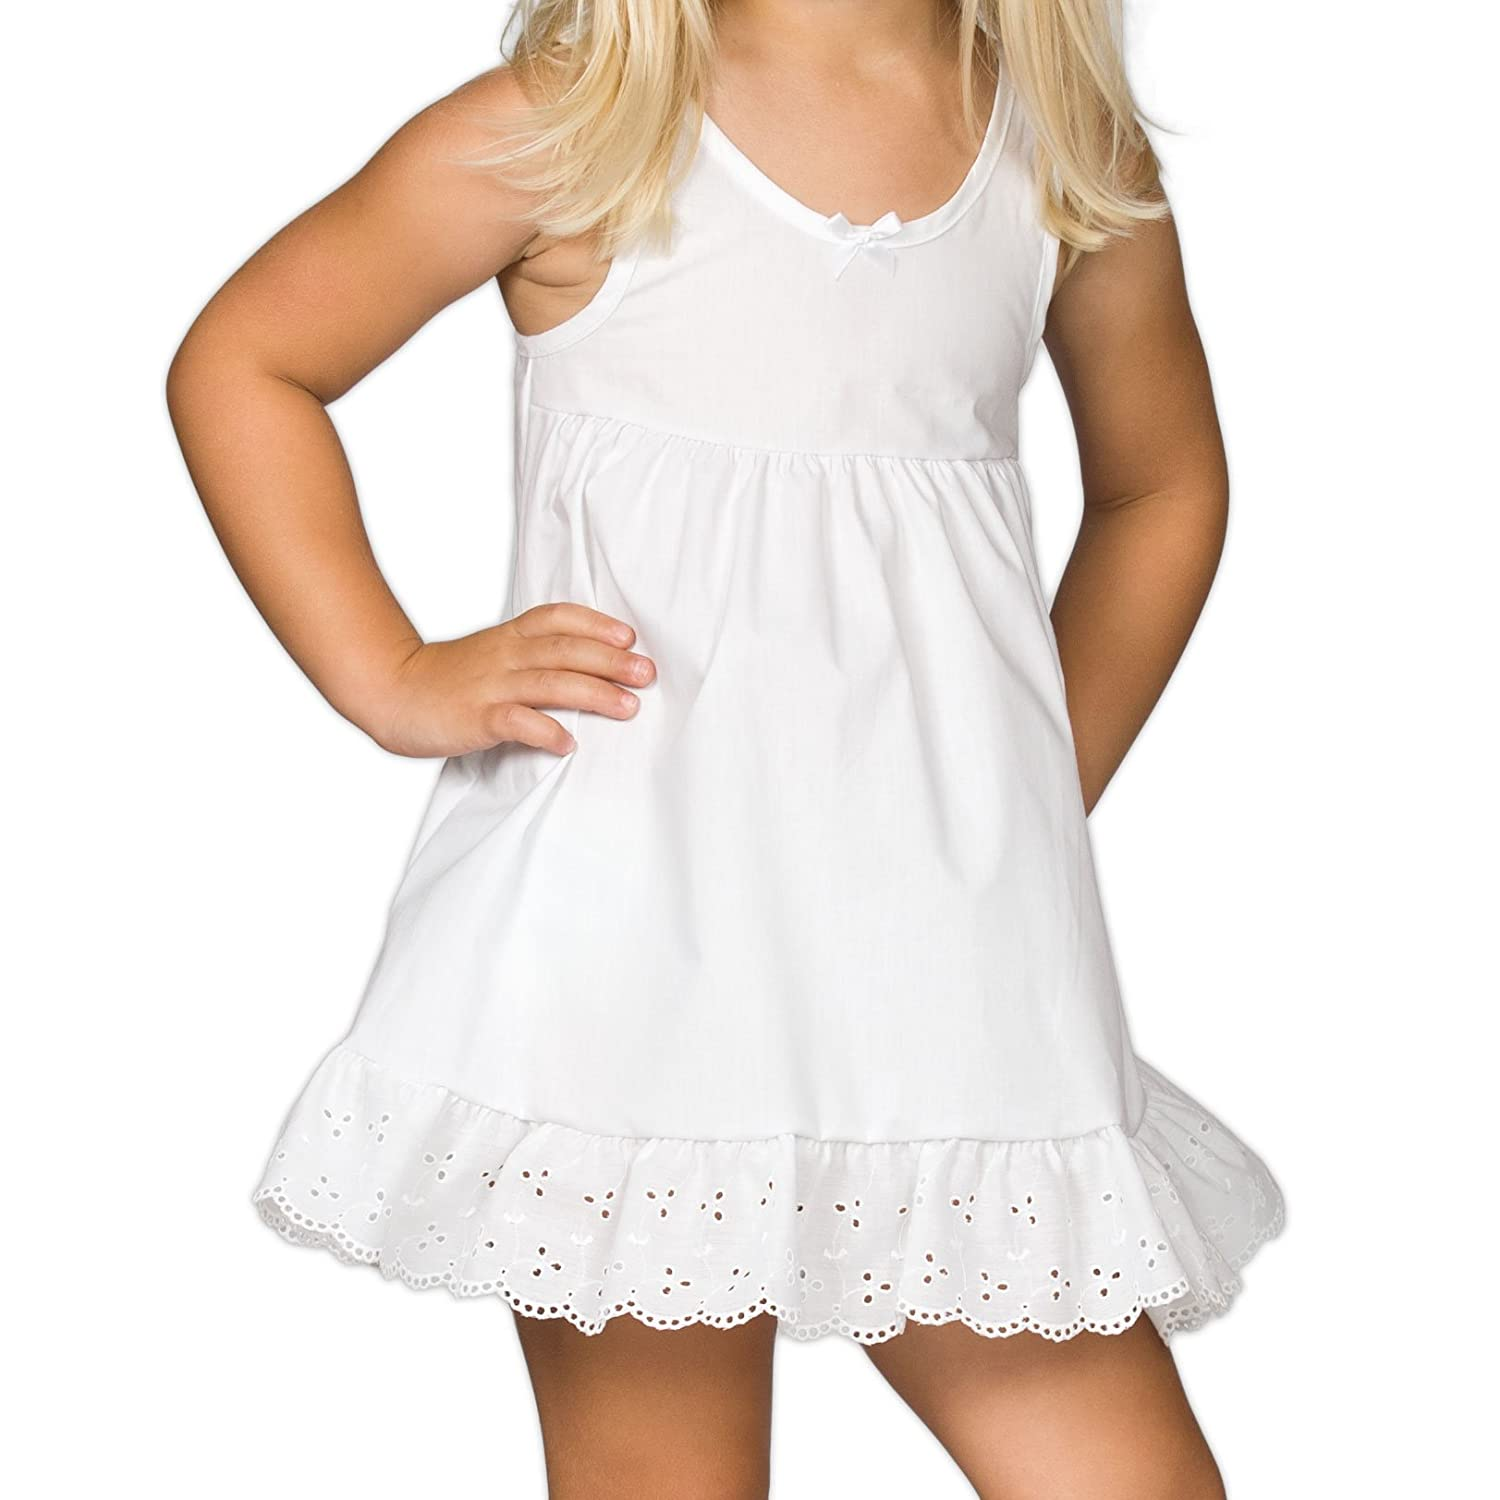 I.C. Collections Baby Girls White Adjustable Tea-Length Slip, 18m New ICM 000205-WHA